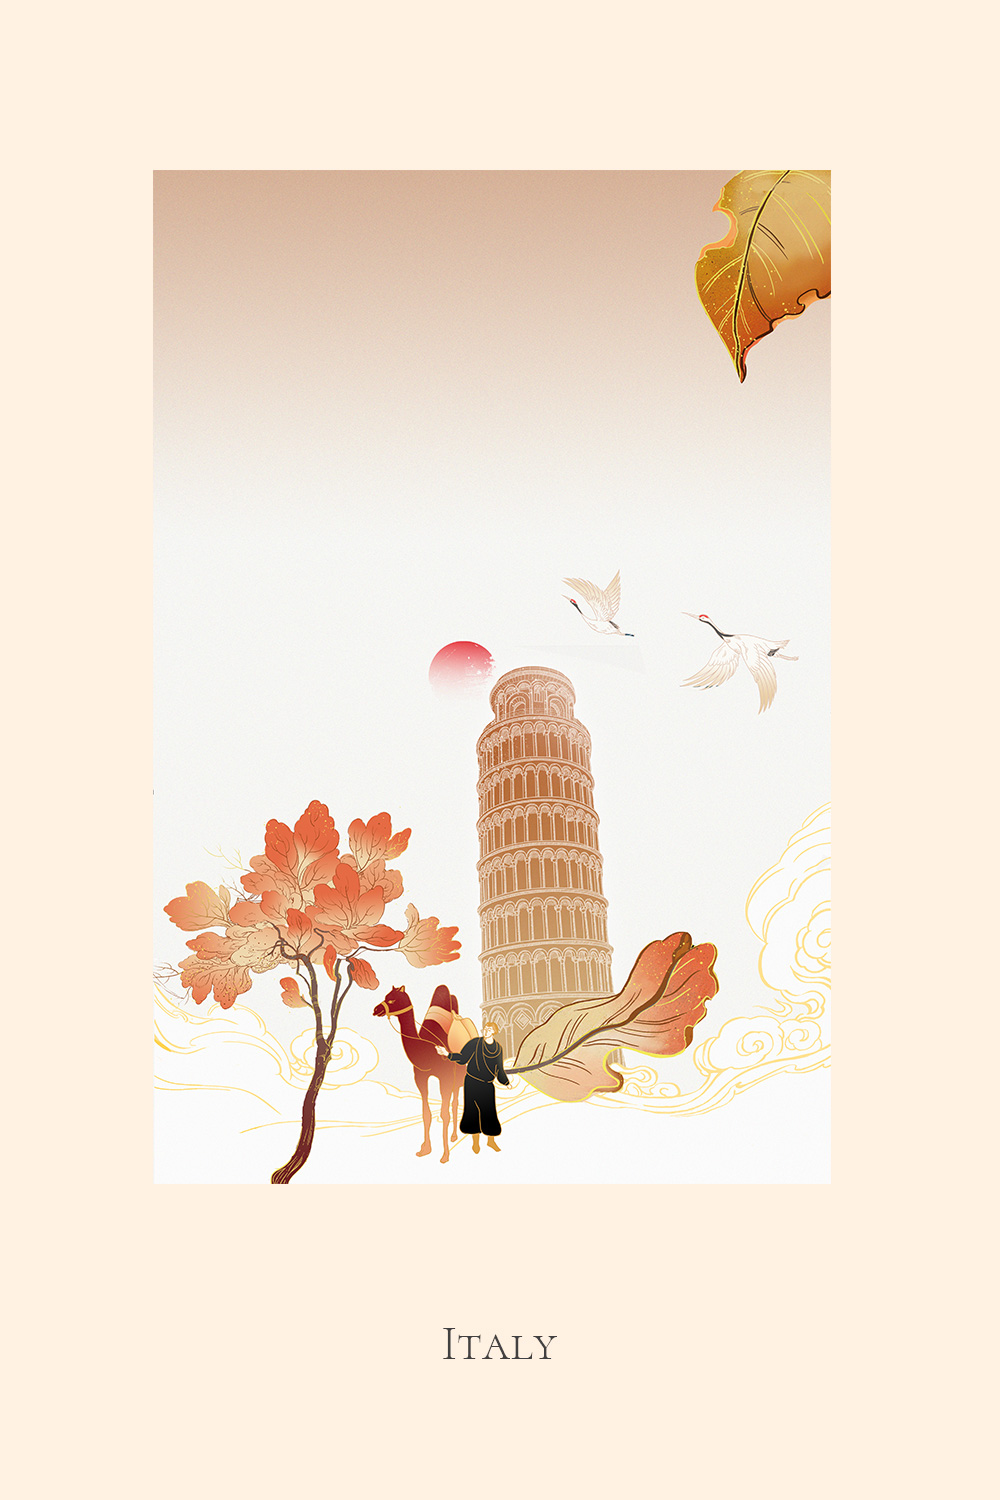 Illustration of a man with a camel at the Leaning Tower of Pisa